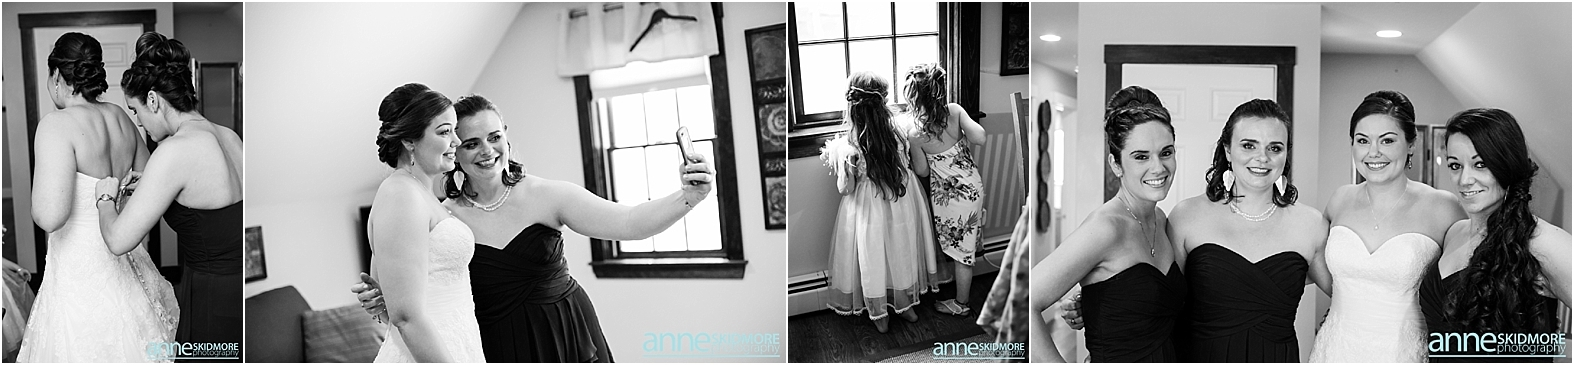 Hardy_Farm_Wedding_0012